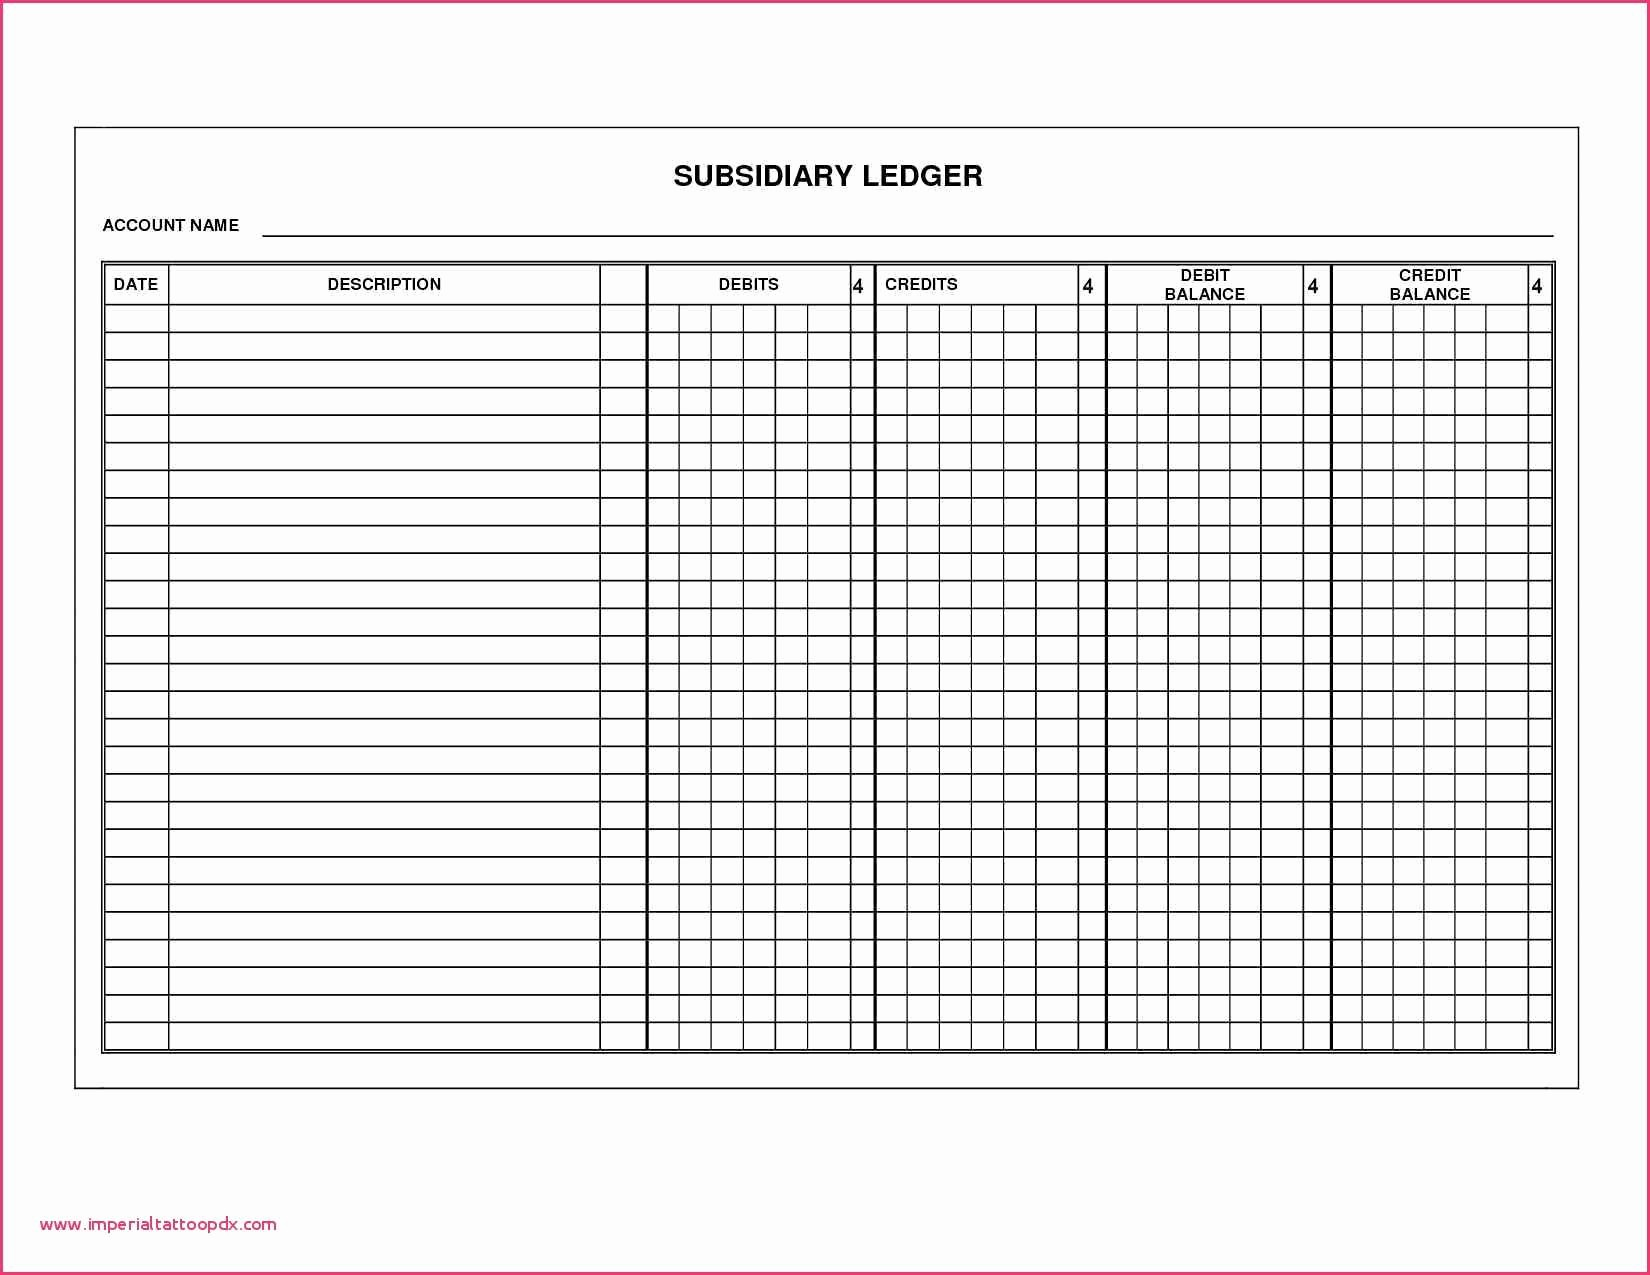 Accounts Receivable Ledger Excel Template Awesome 10 11 Account Receivable Ledger